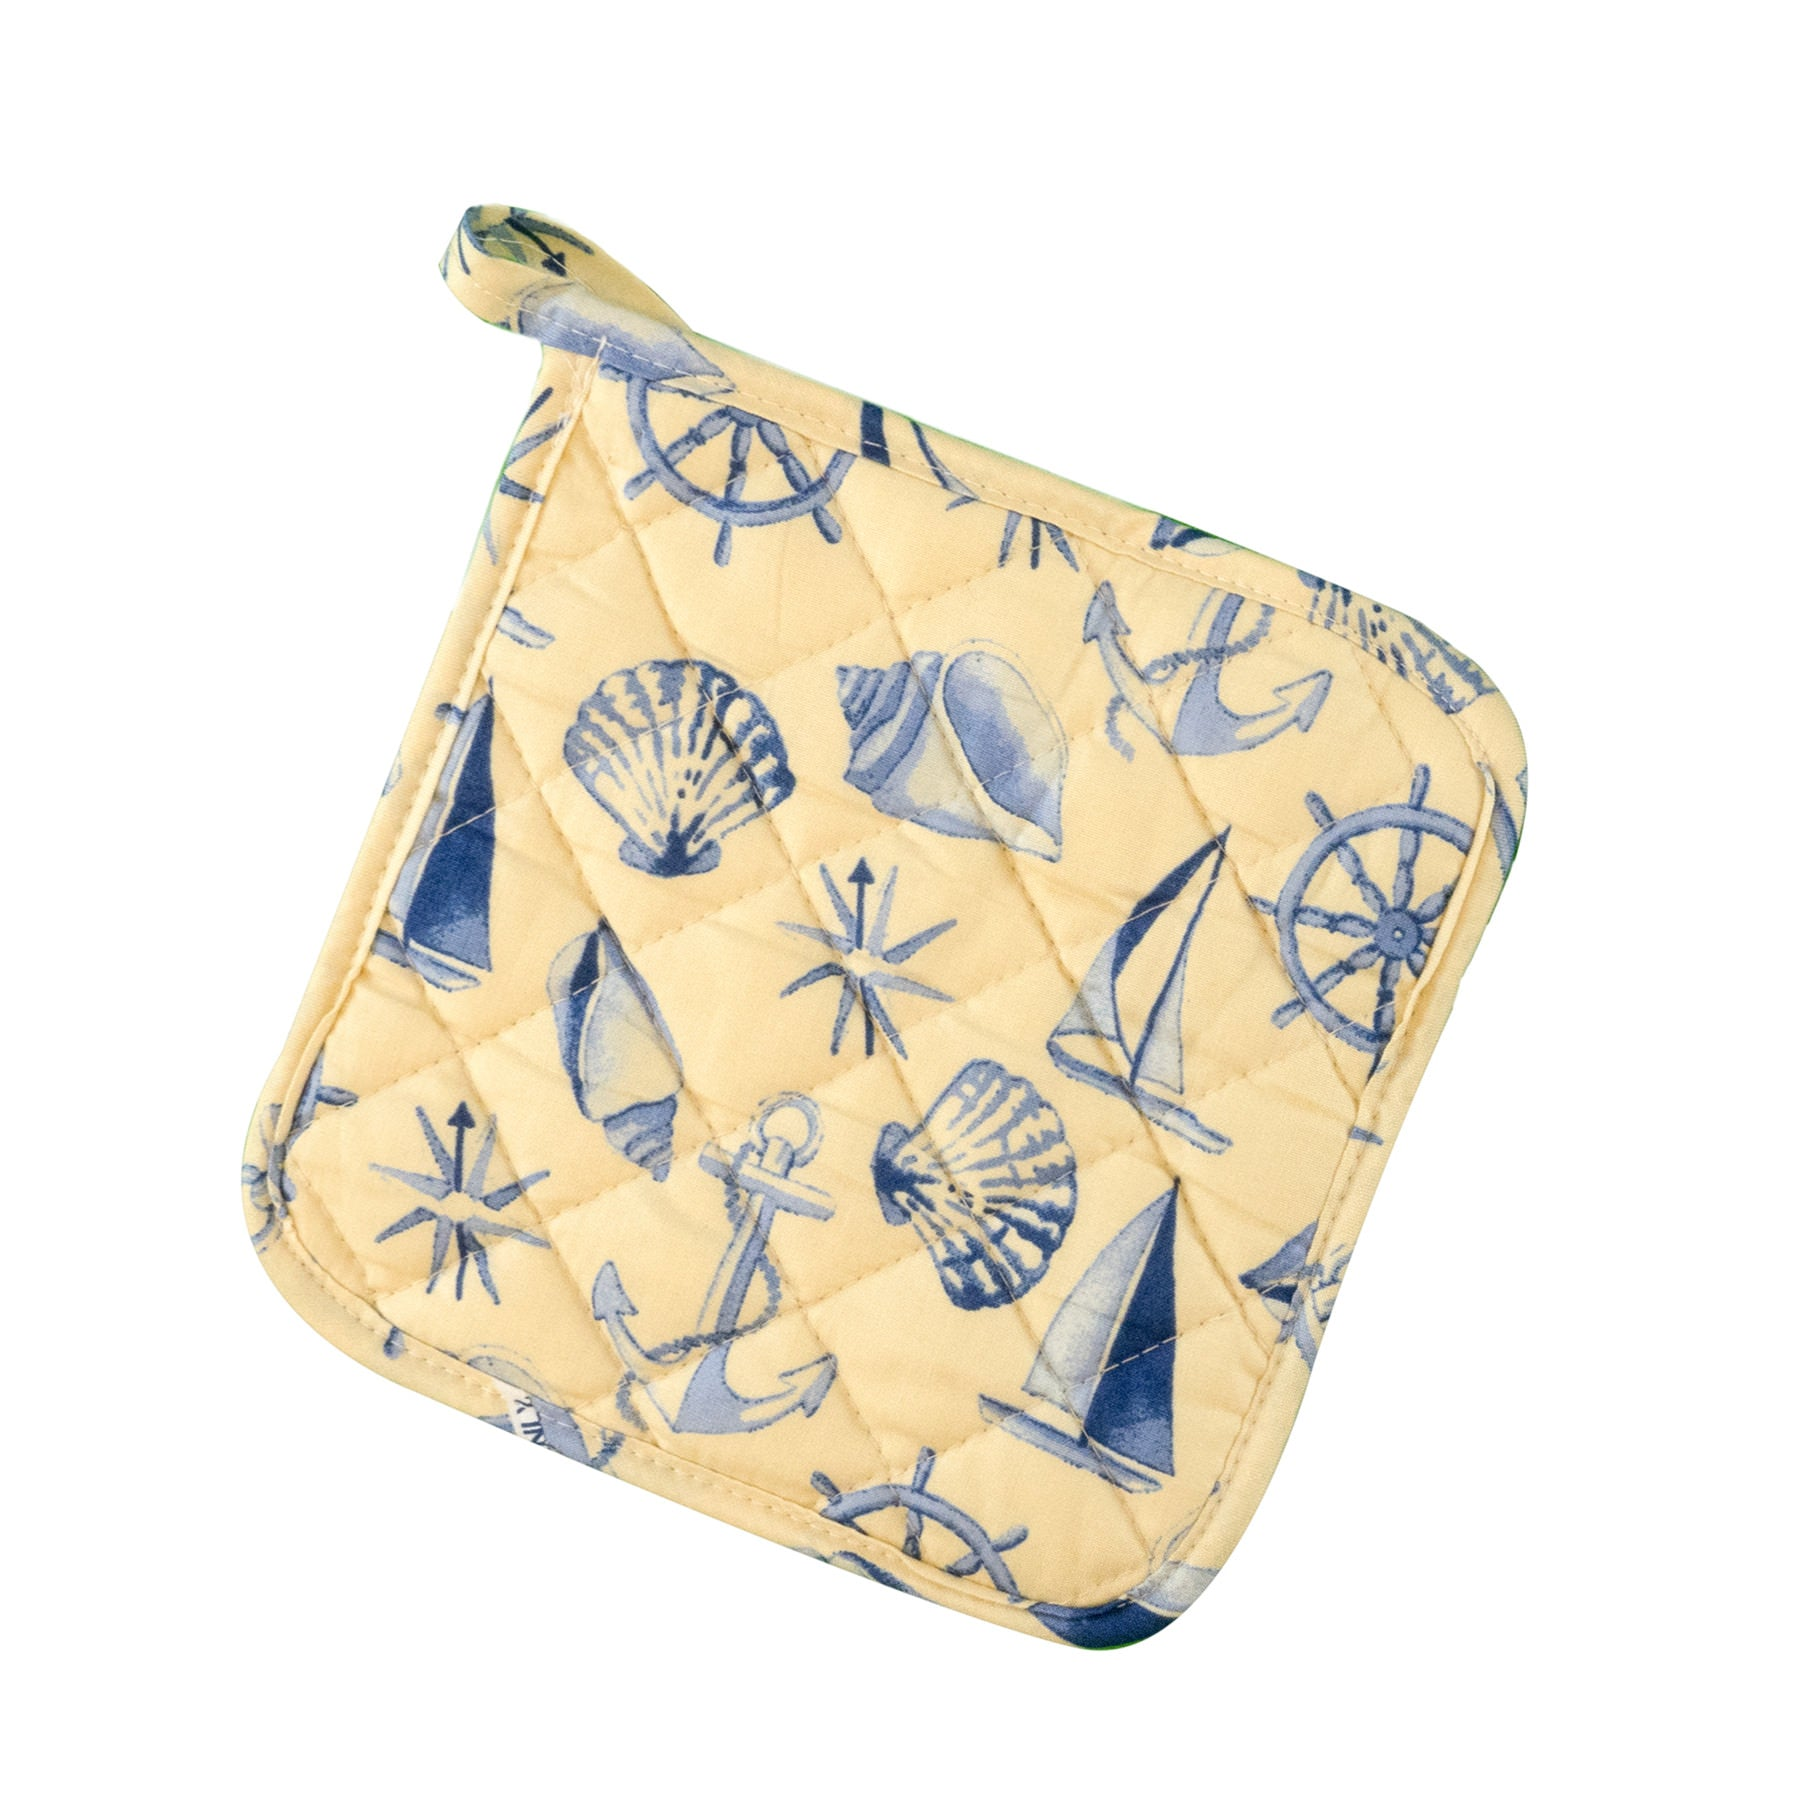 Stitch & Sparkle POT HOLDER 1 Piece Pack, Heat Resistant, 100% Cotton, Nautical, Shell Beige